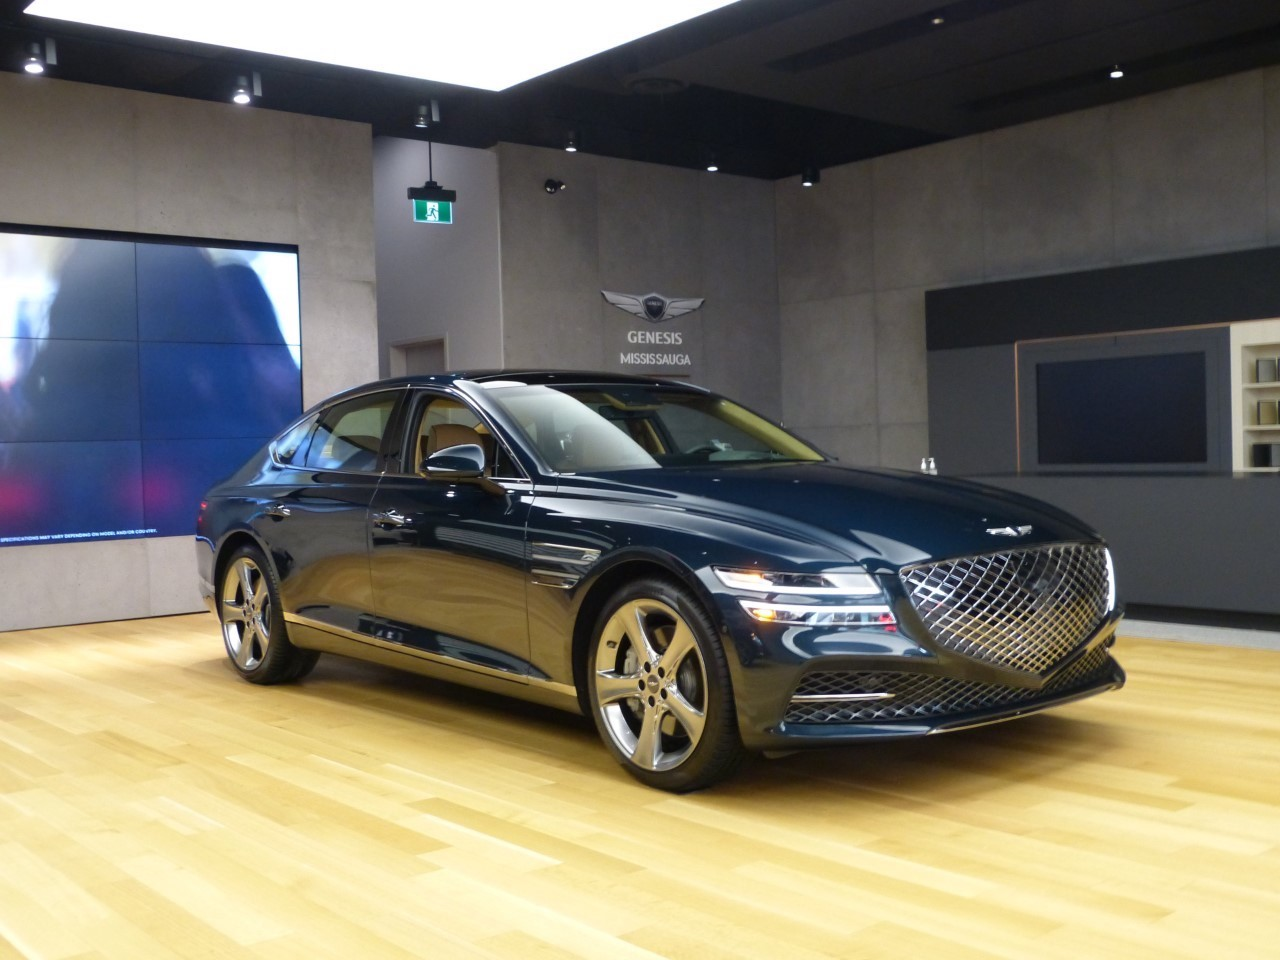 Genesis GV80 SUV and G80 Sedan Preview